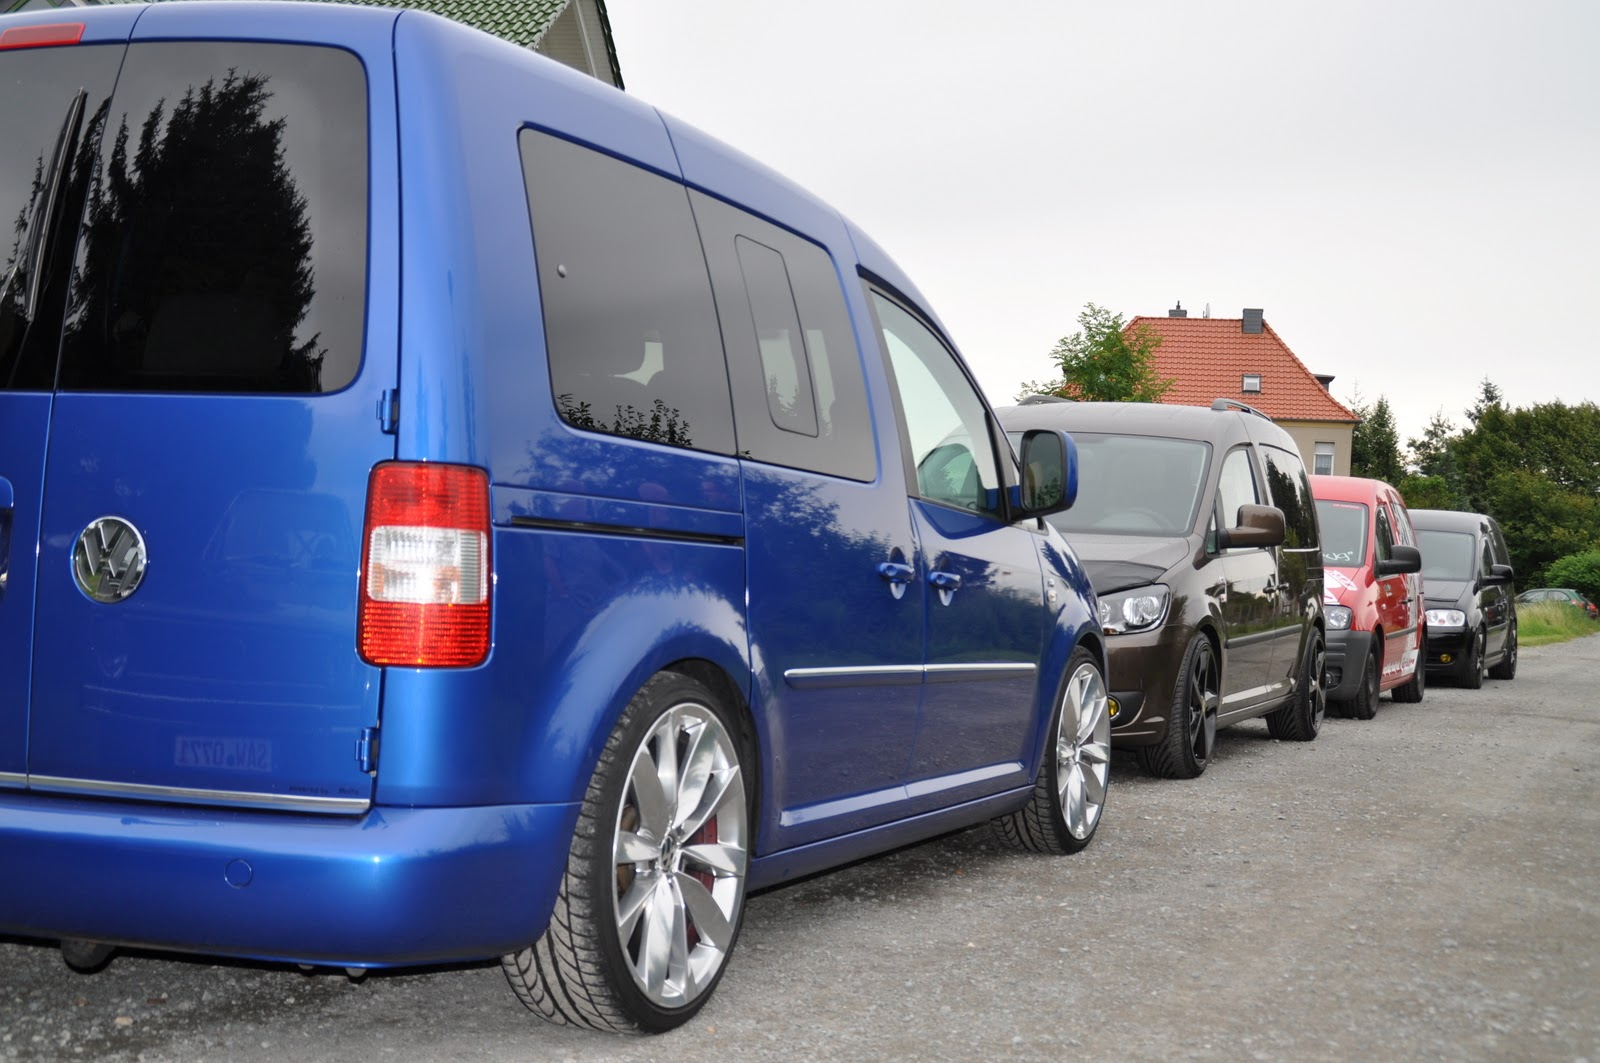 vw caddy life style the caddy family 2011. Black Bedroom Furniture Sets. Home Design Ideas